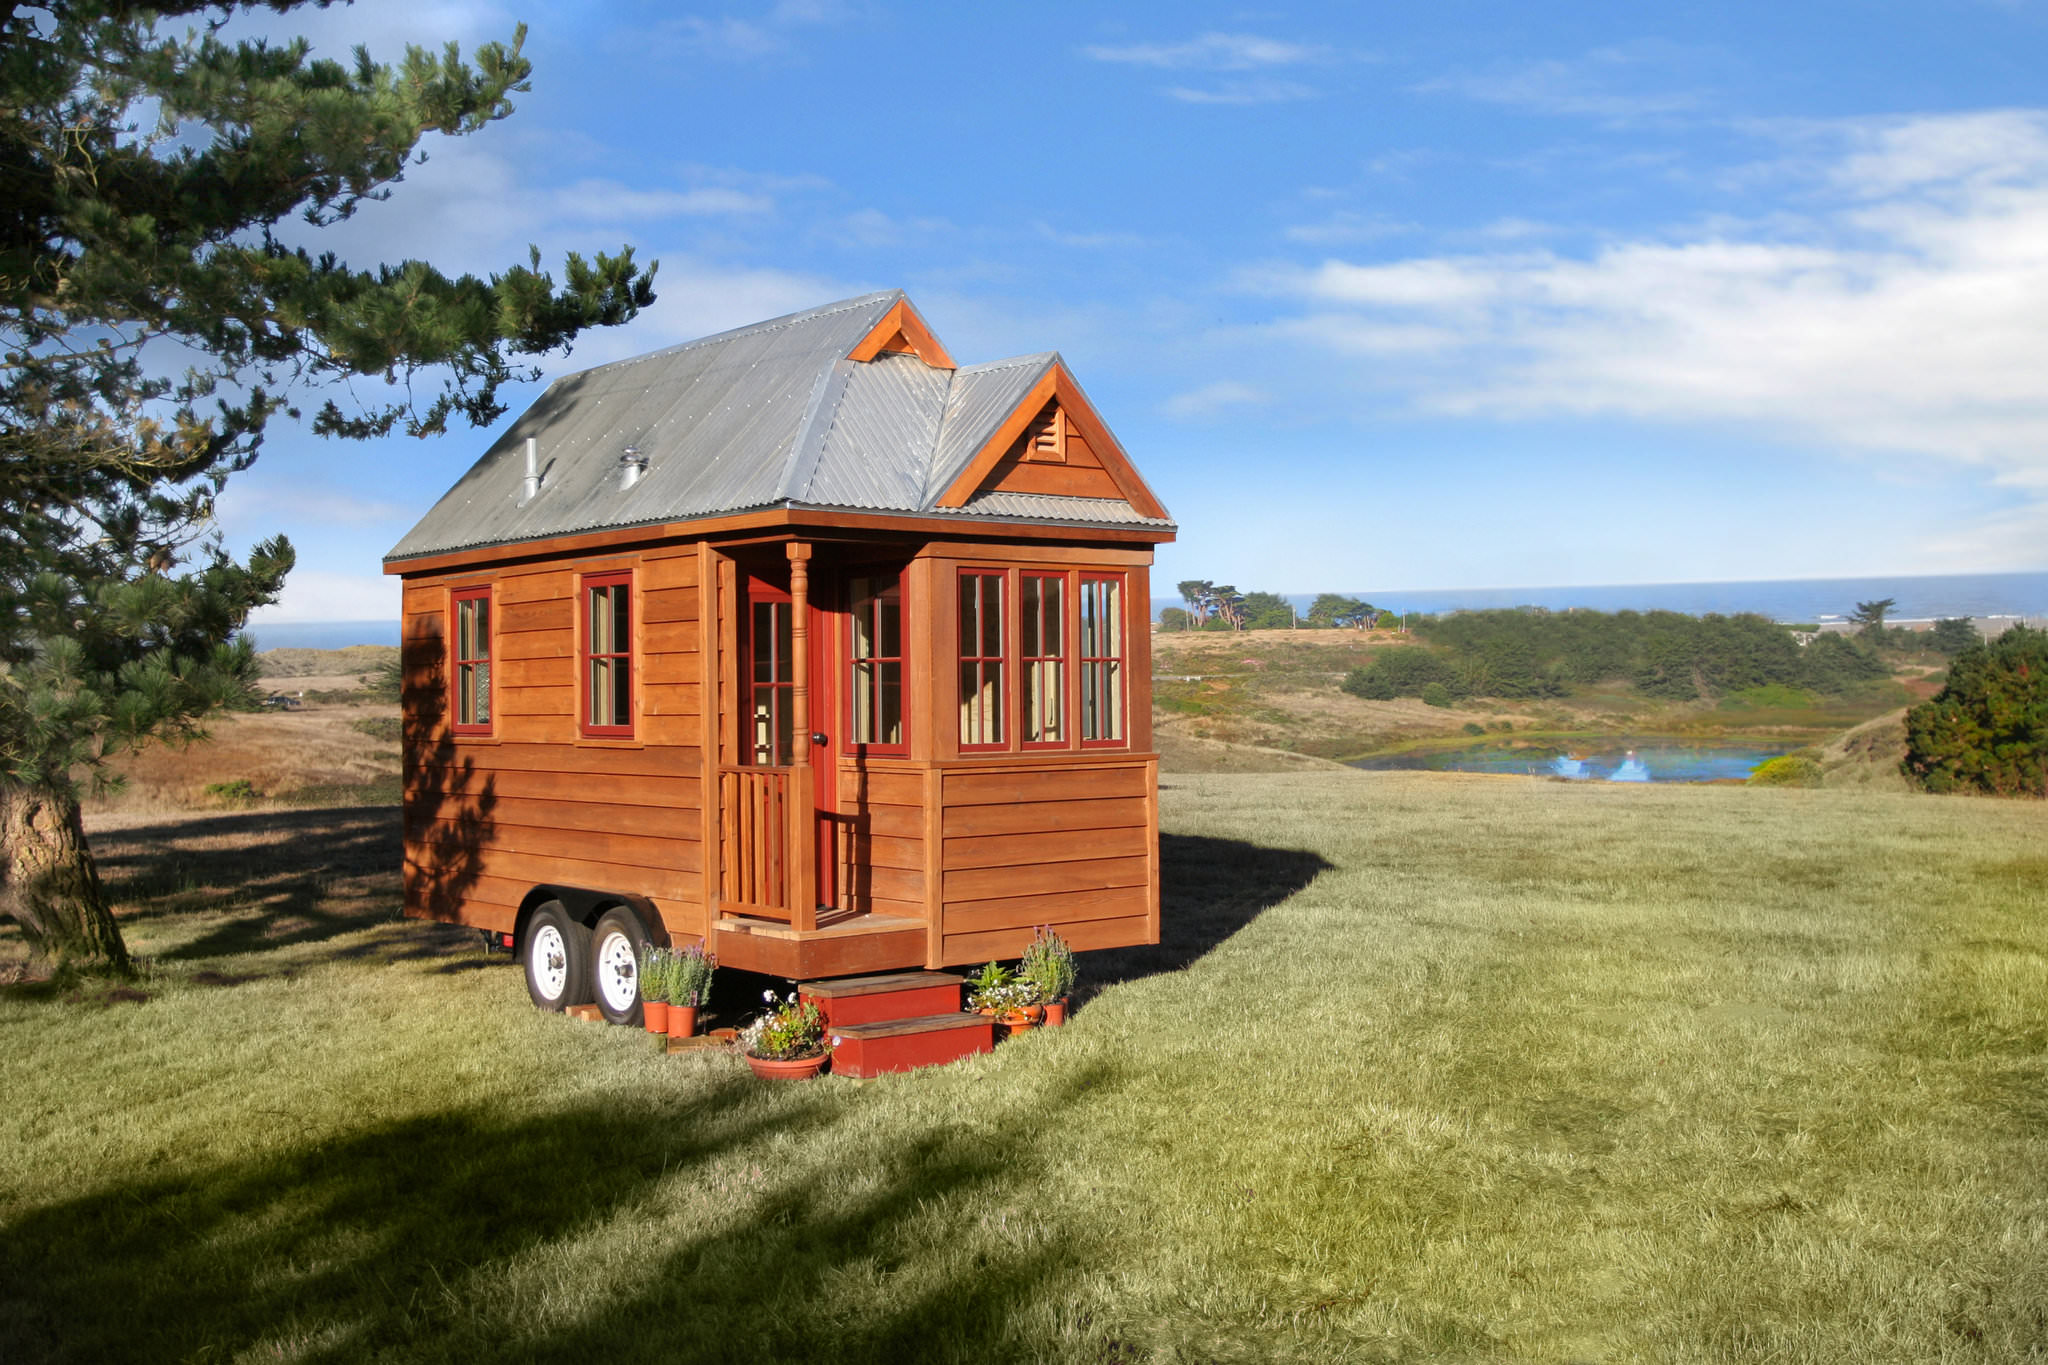 Tiny Houses Tumbleweed Locations Tiny Get Free Image